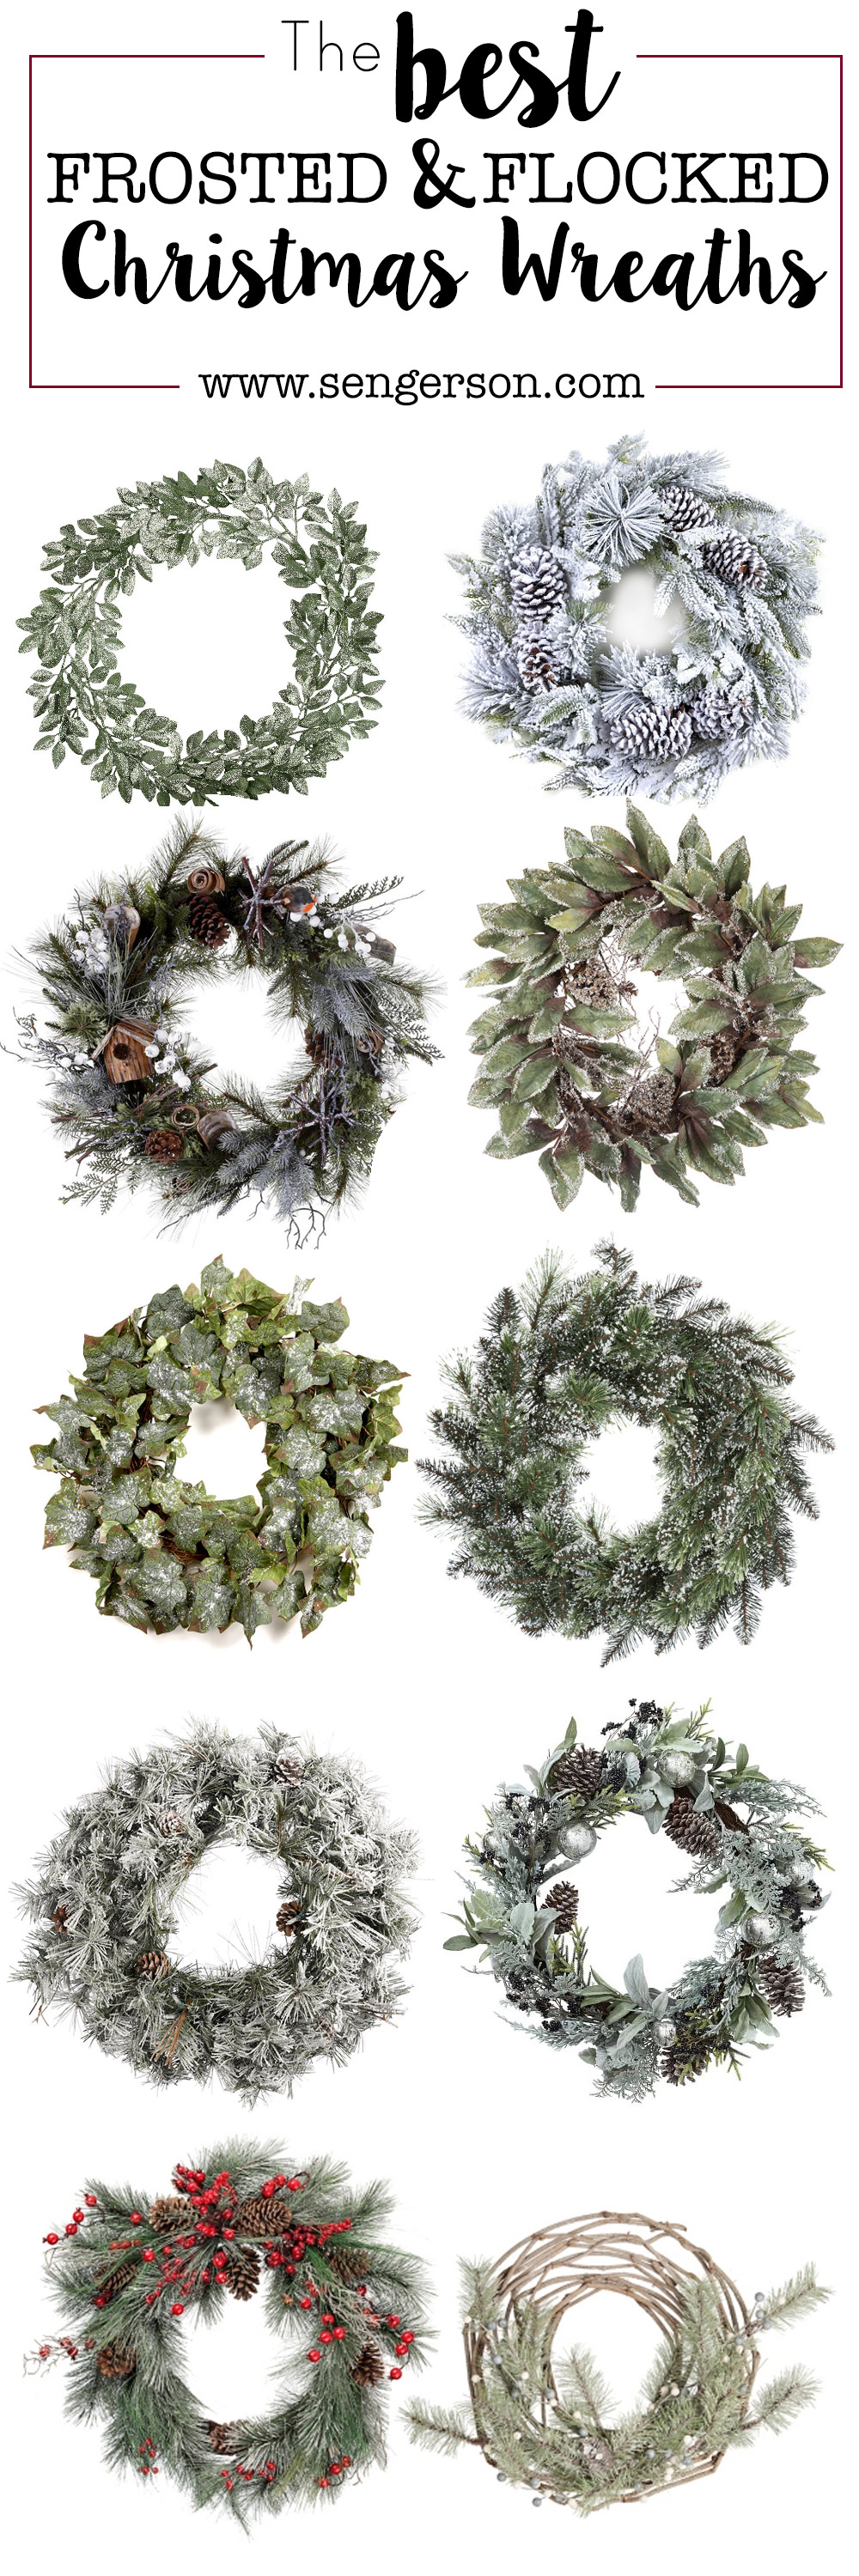 Roundup of Flocked Christmas Wreaths for the Holidays